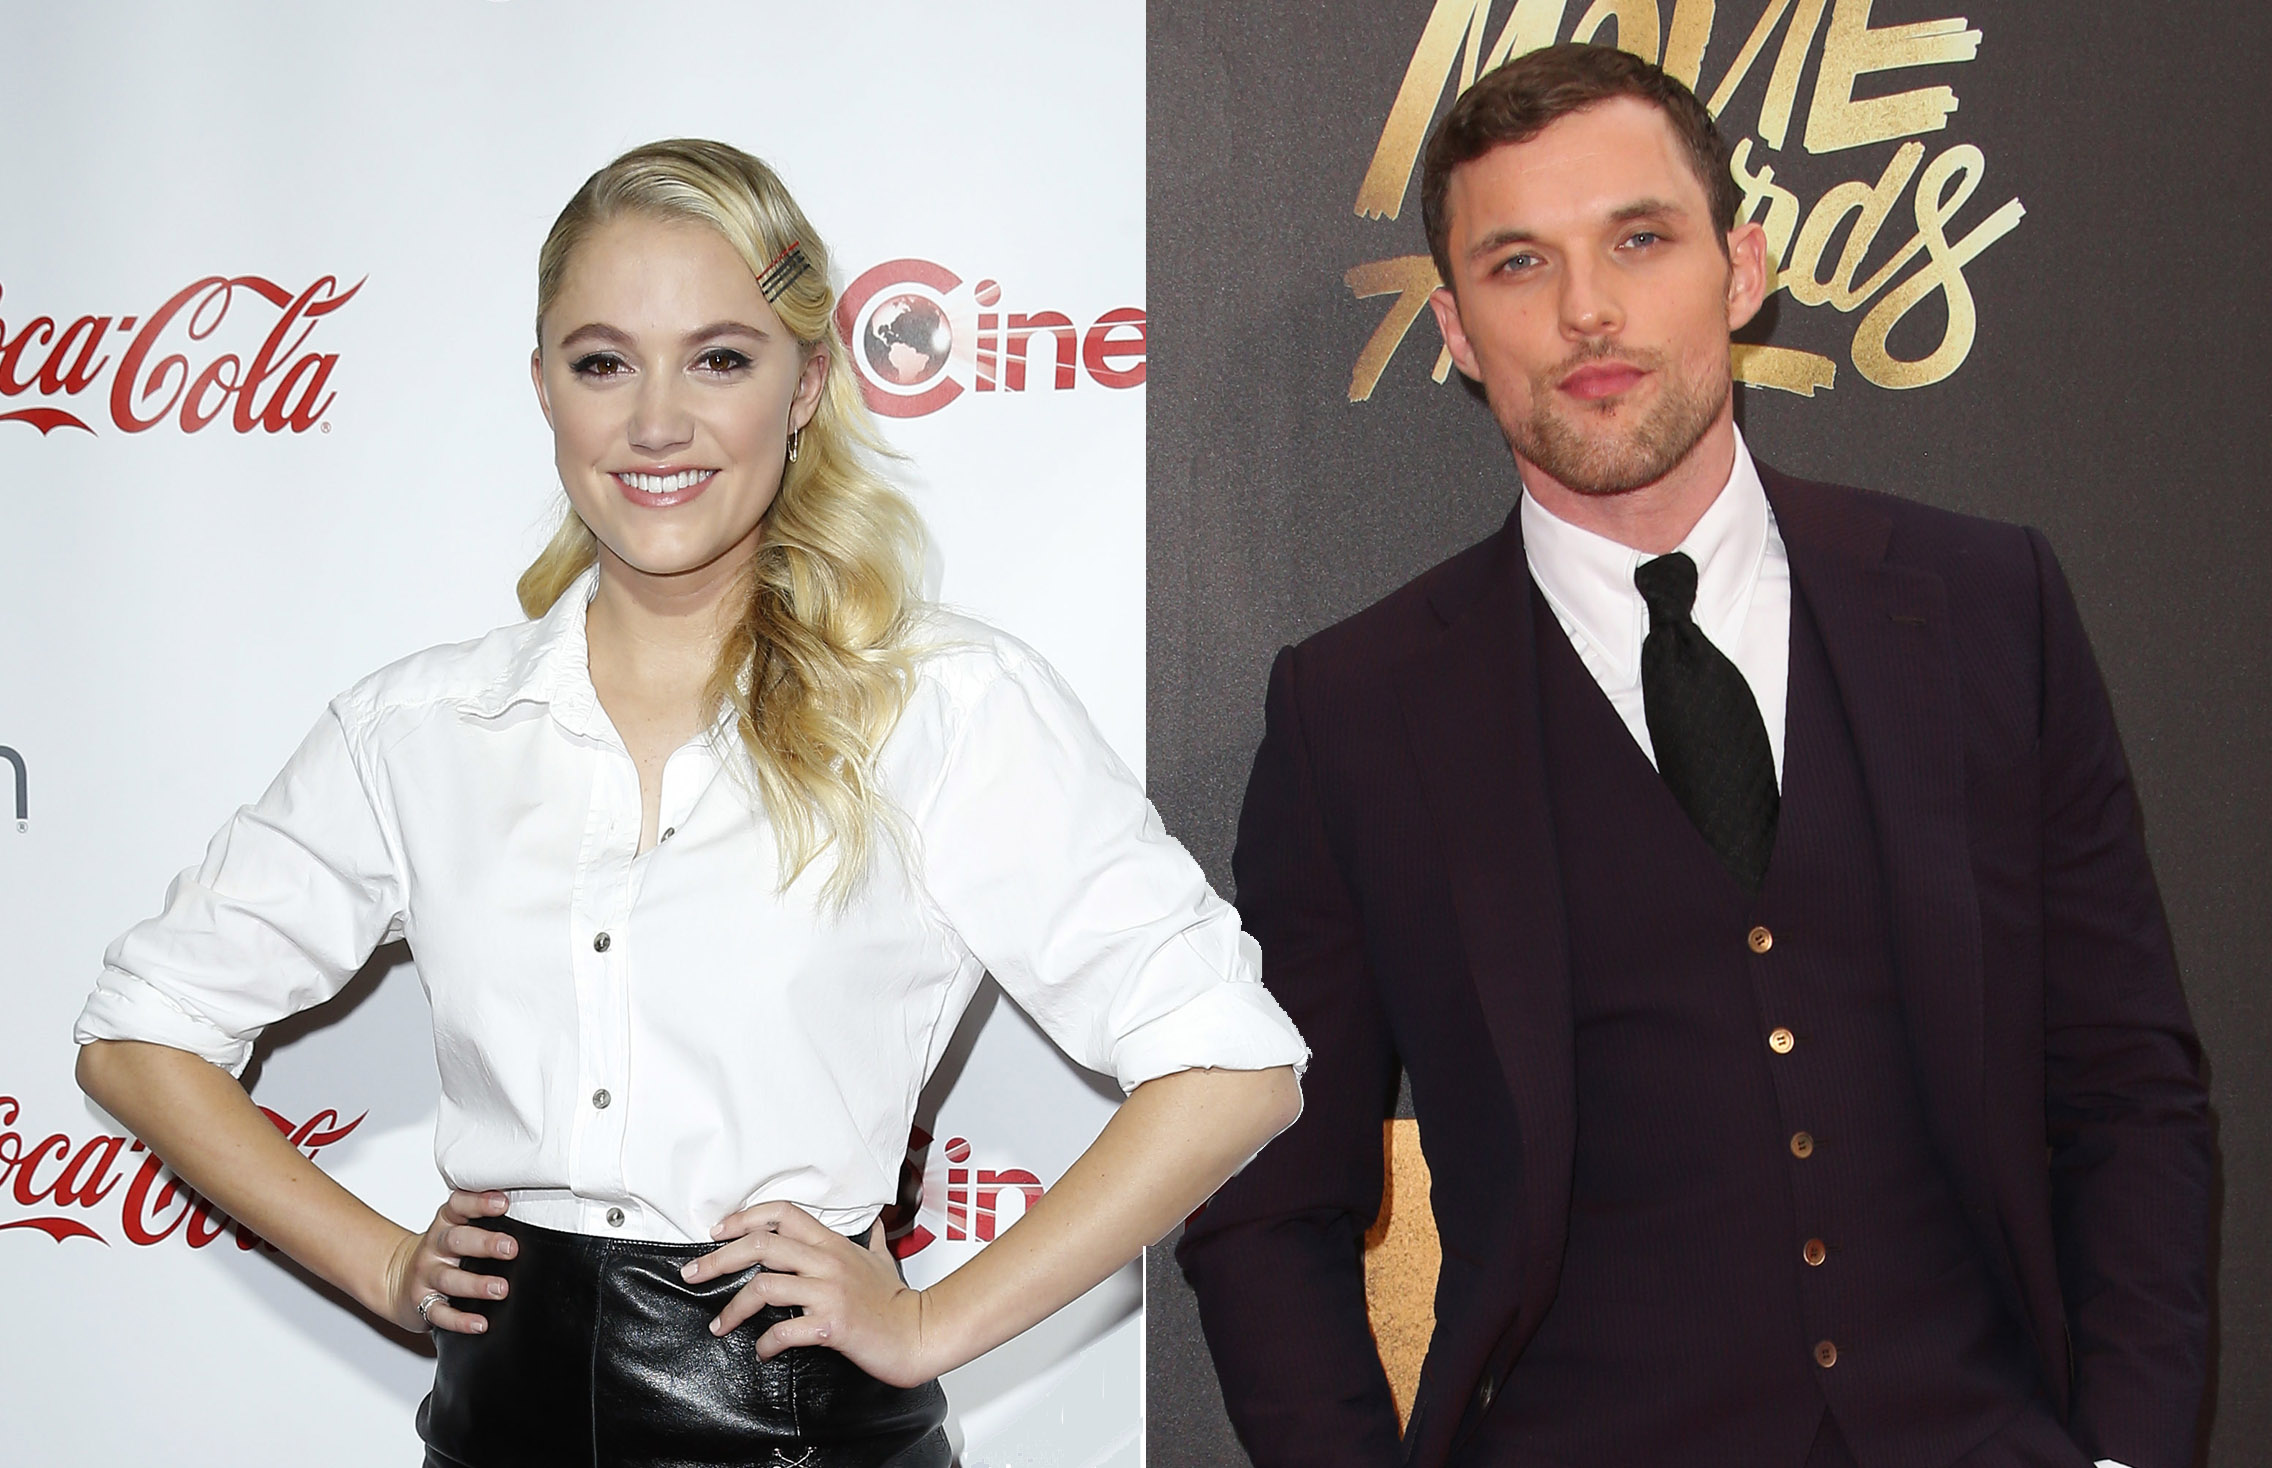 The sci-fi thriller TAU will star Maika Monroe and Ed Skrein.